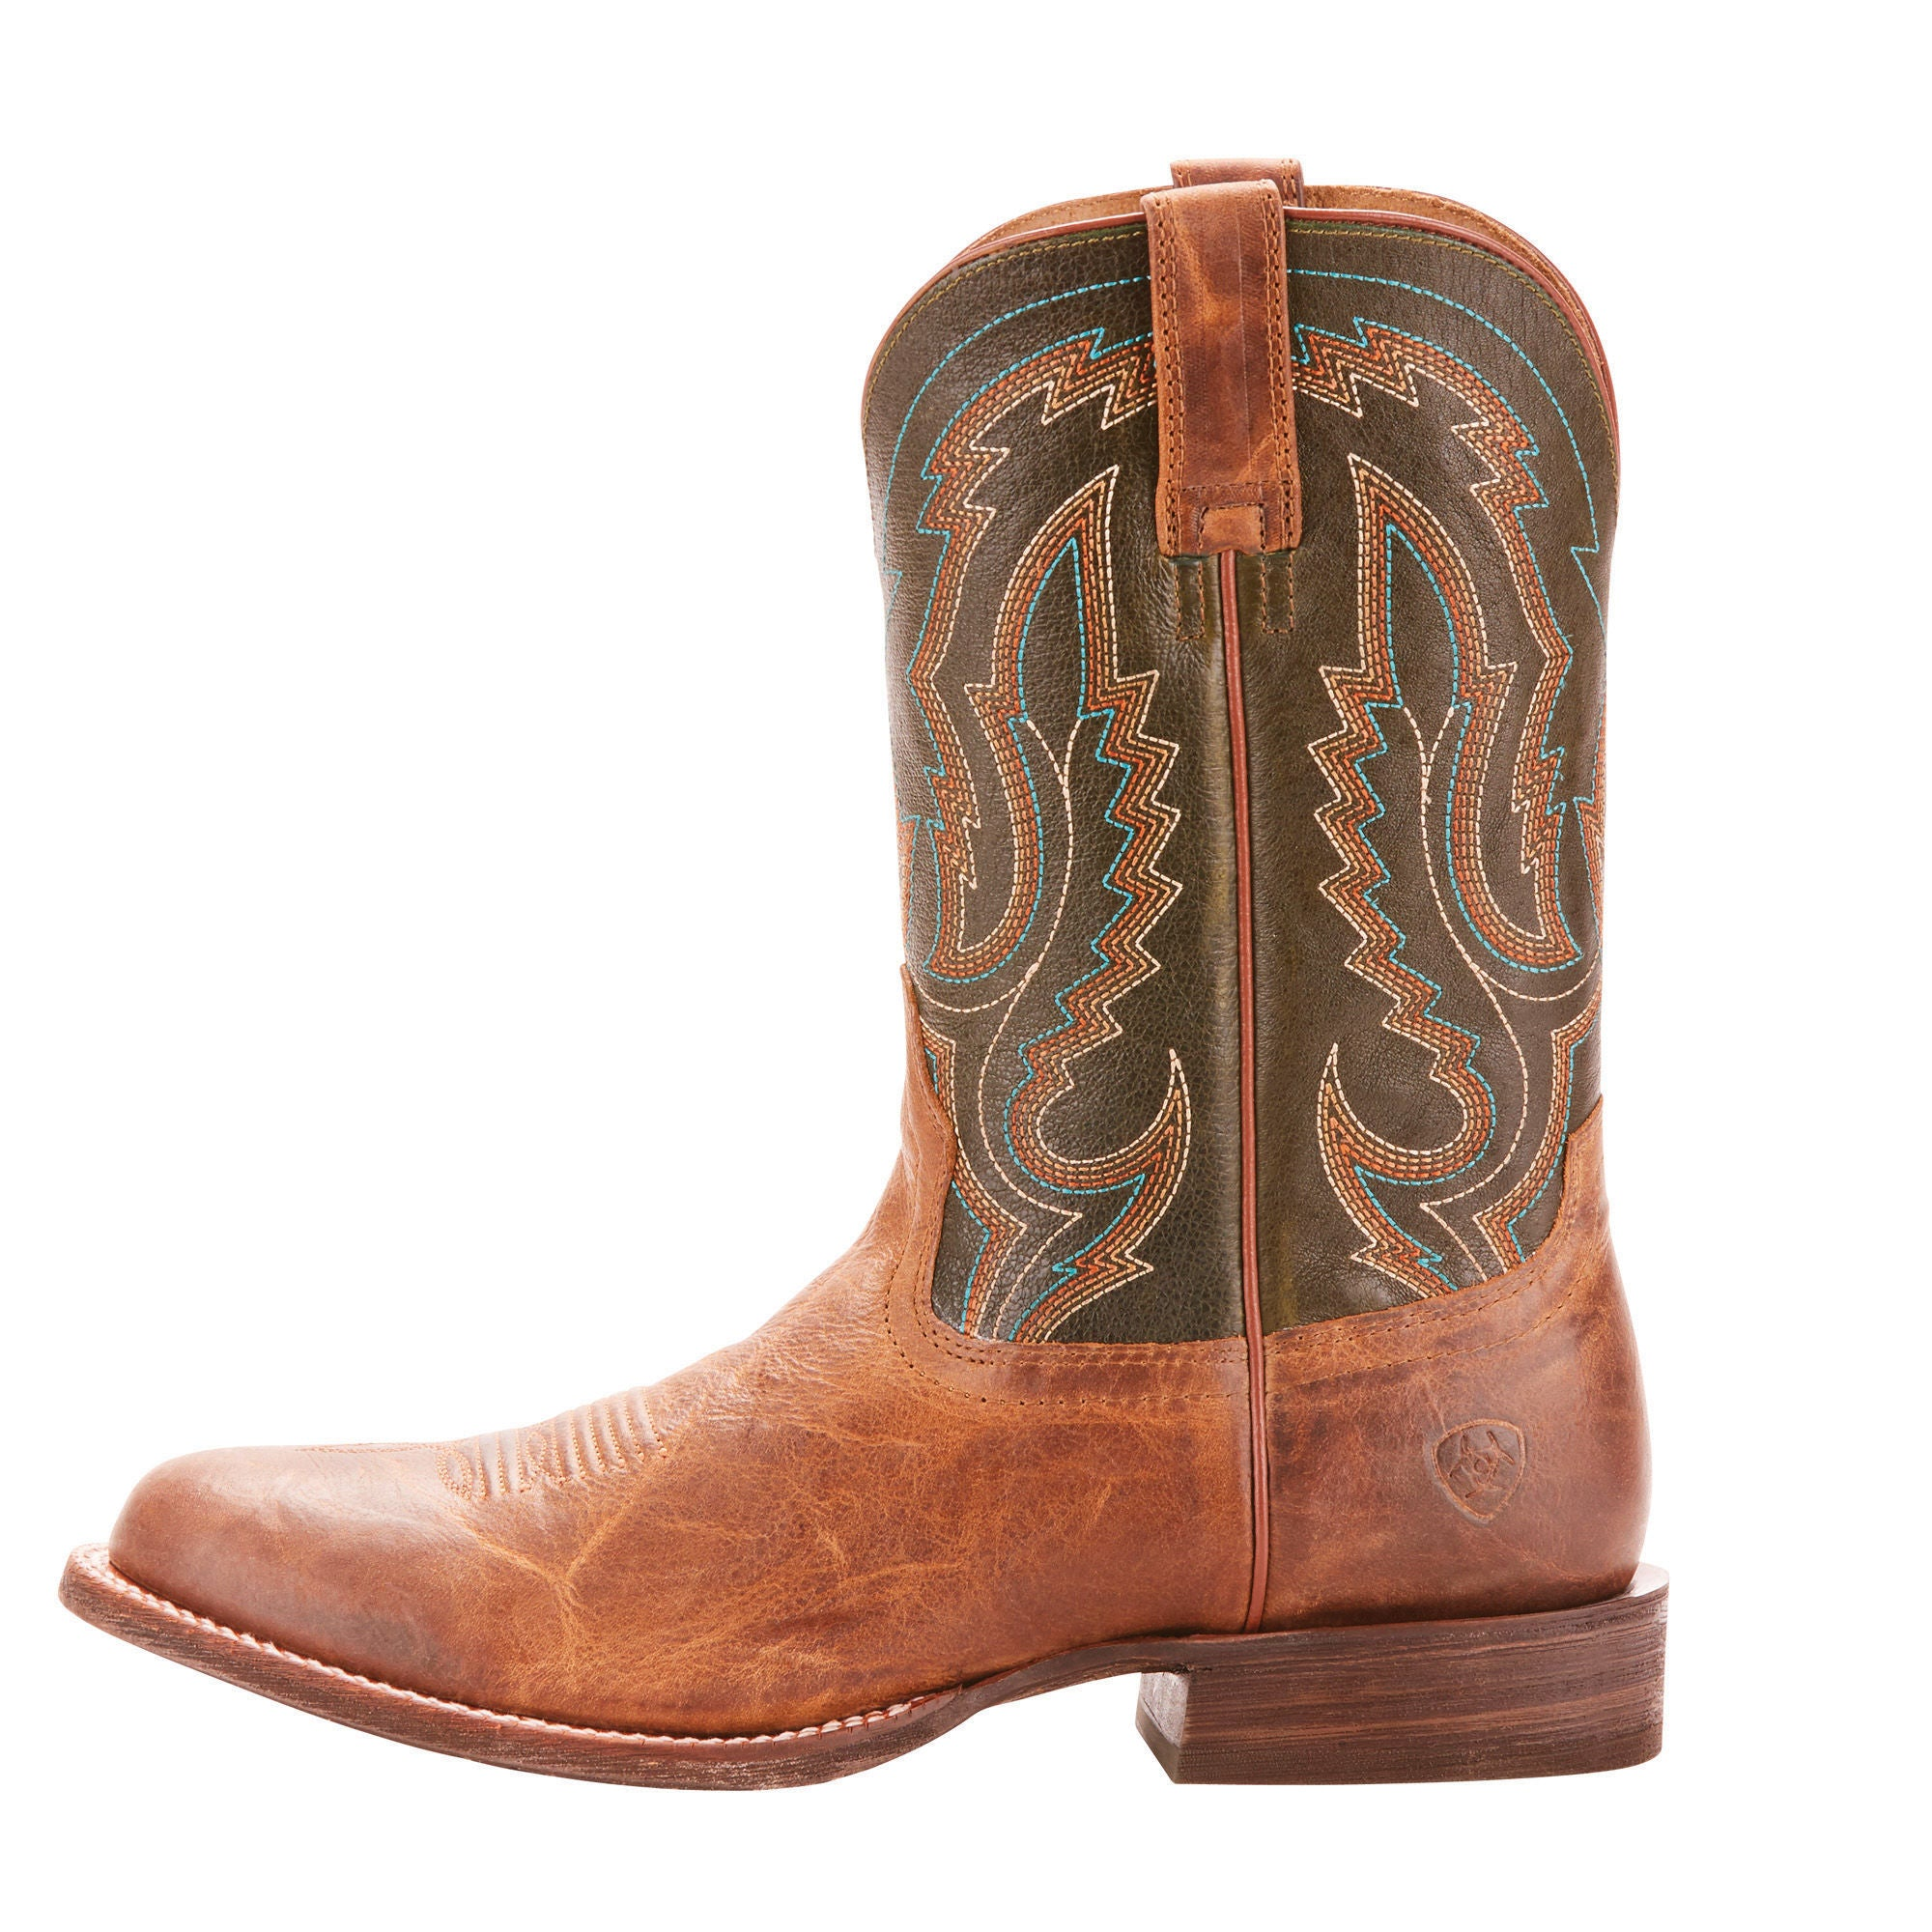 966ead8719e Ariat Mens Circuit Competitor Western Boots Tobbaco Toffee/Rifle ...